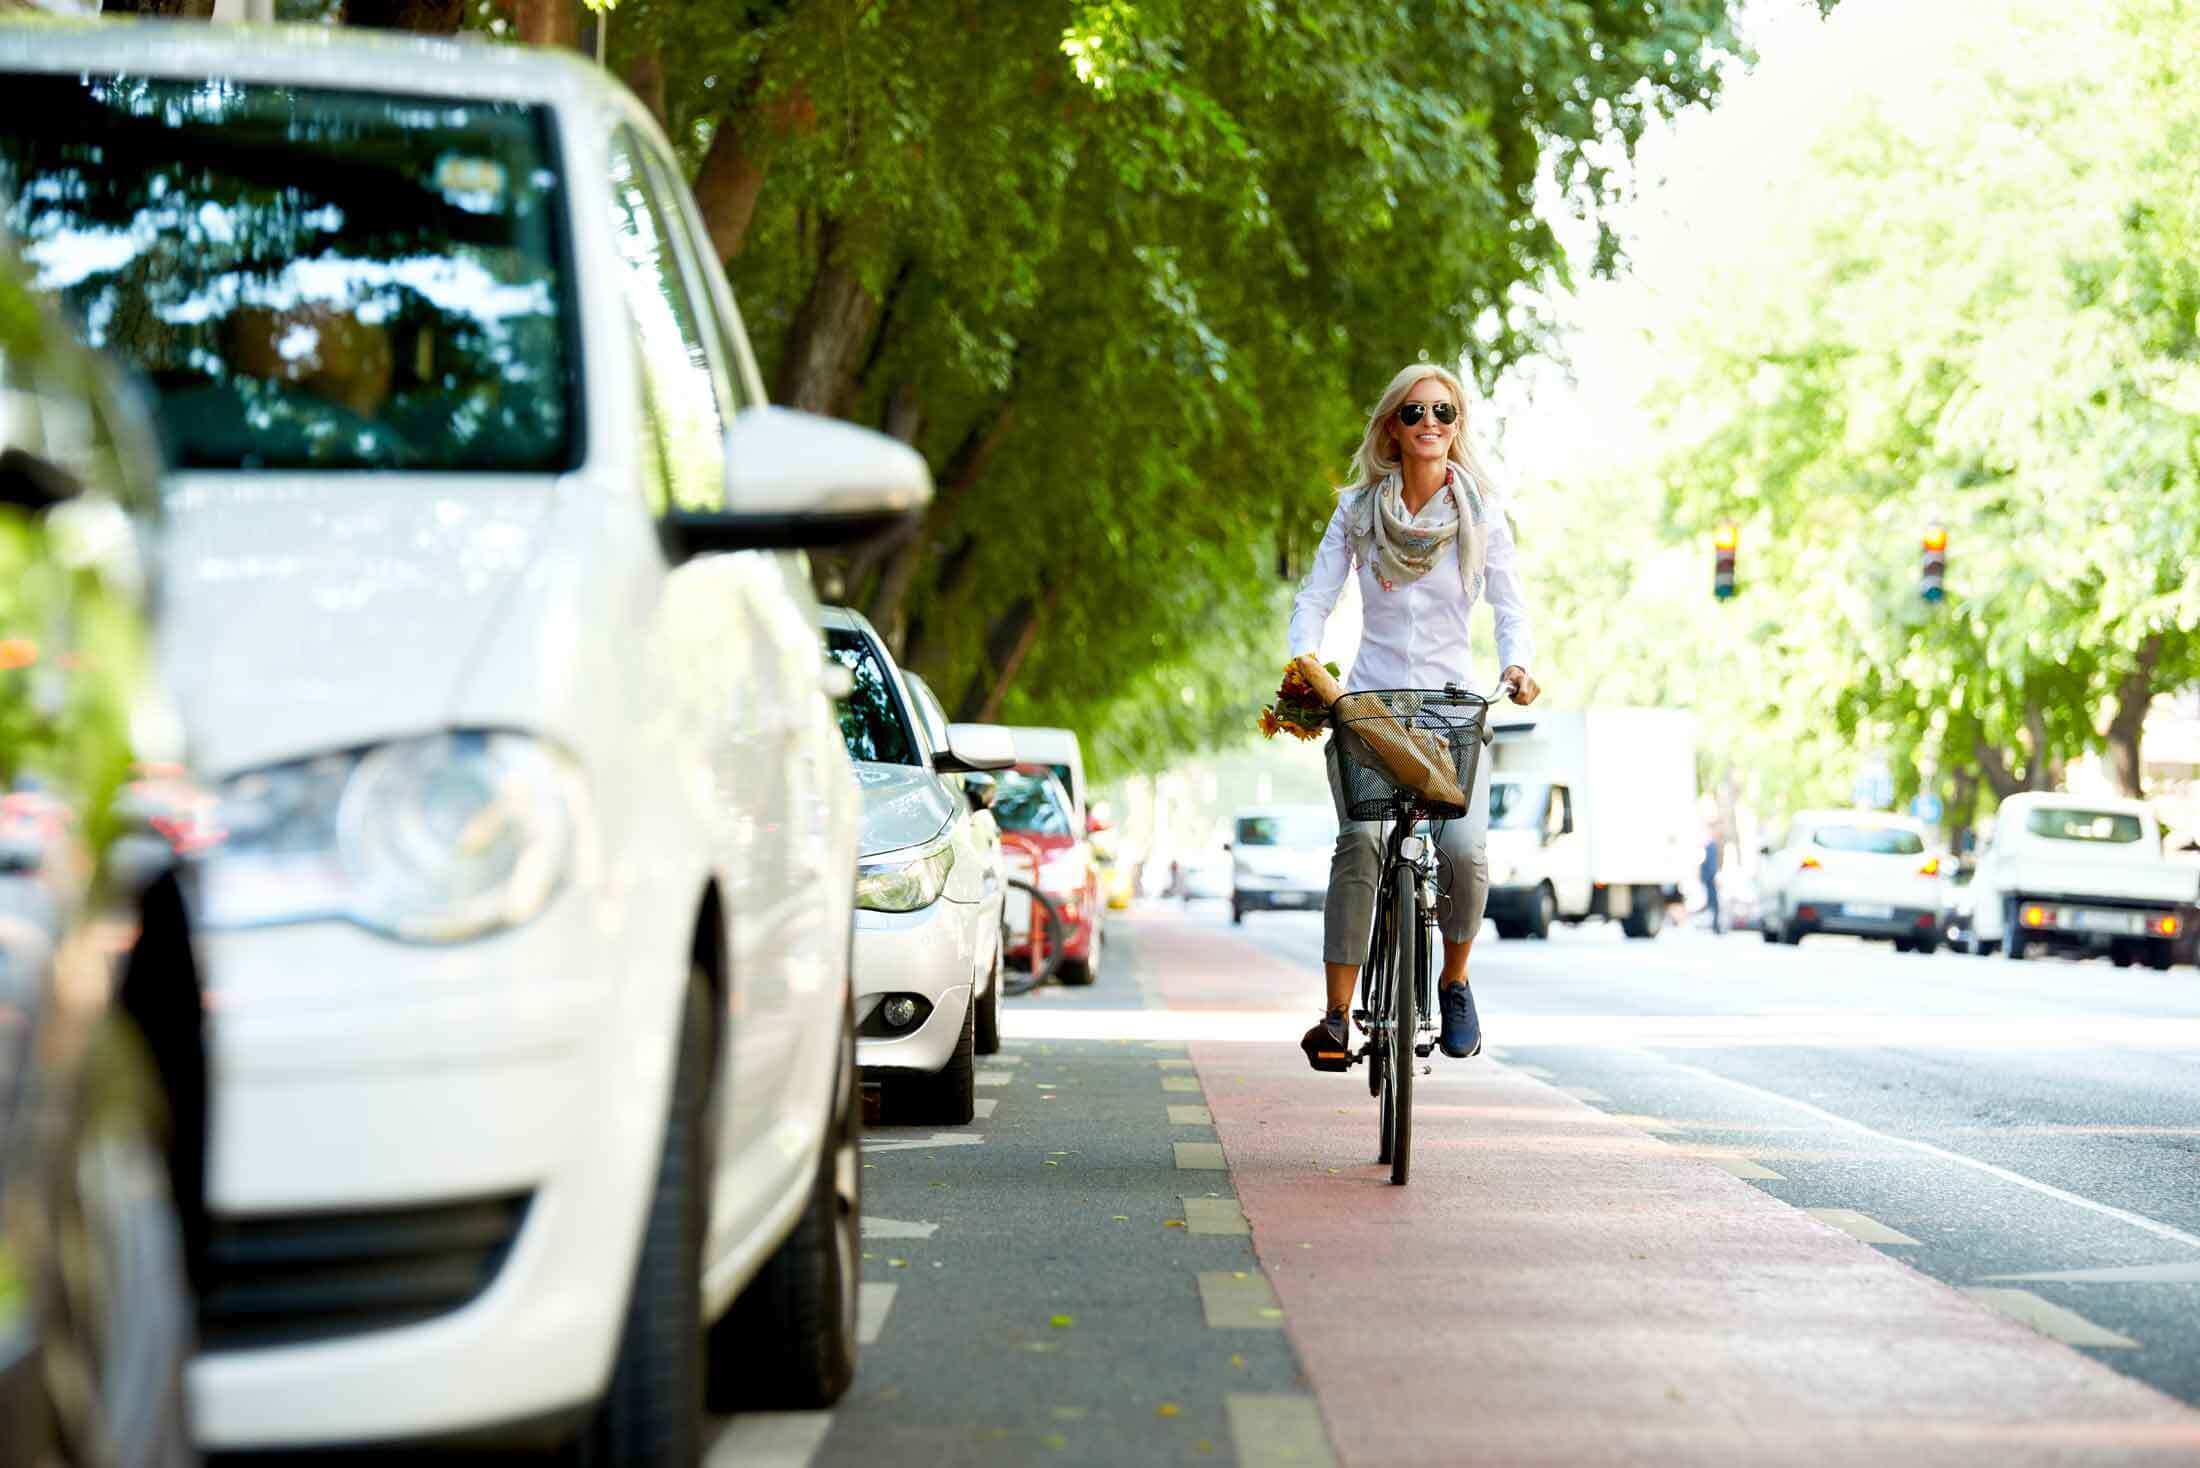 Which insurance company pays for Bicyclist / Pedestrian injuries?